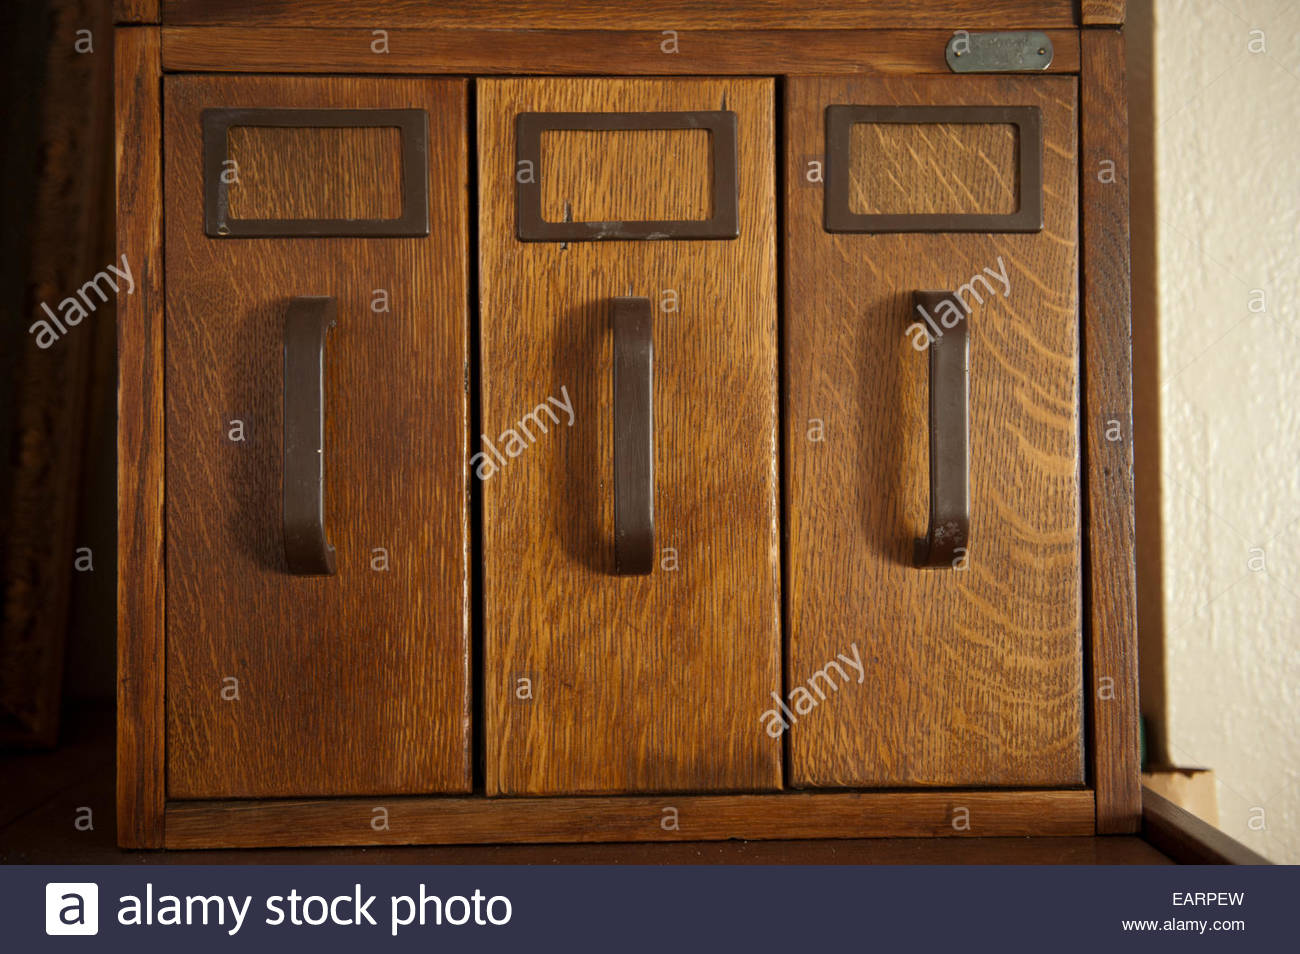 A row of cabinets. Stock Photo